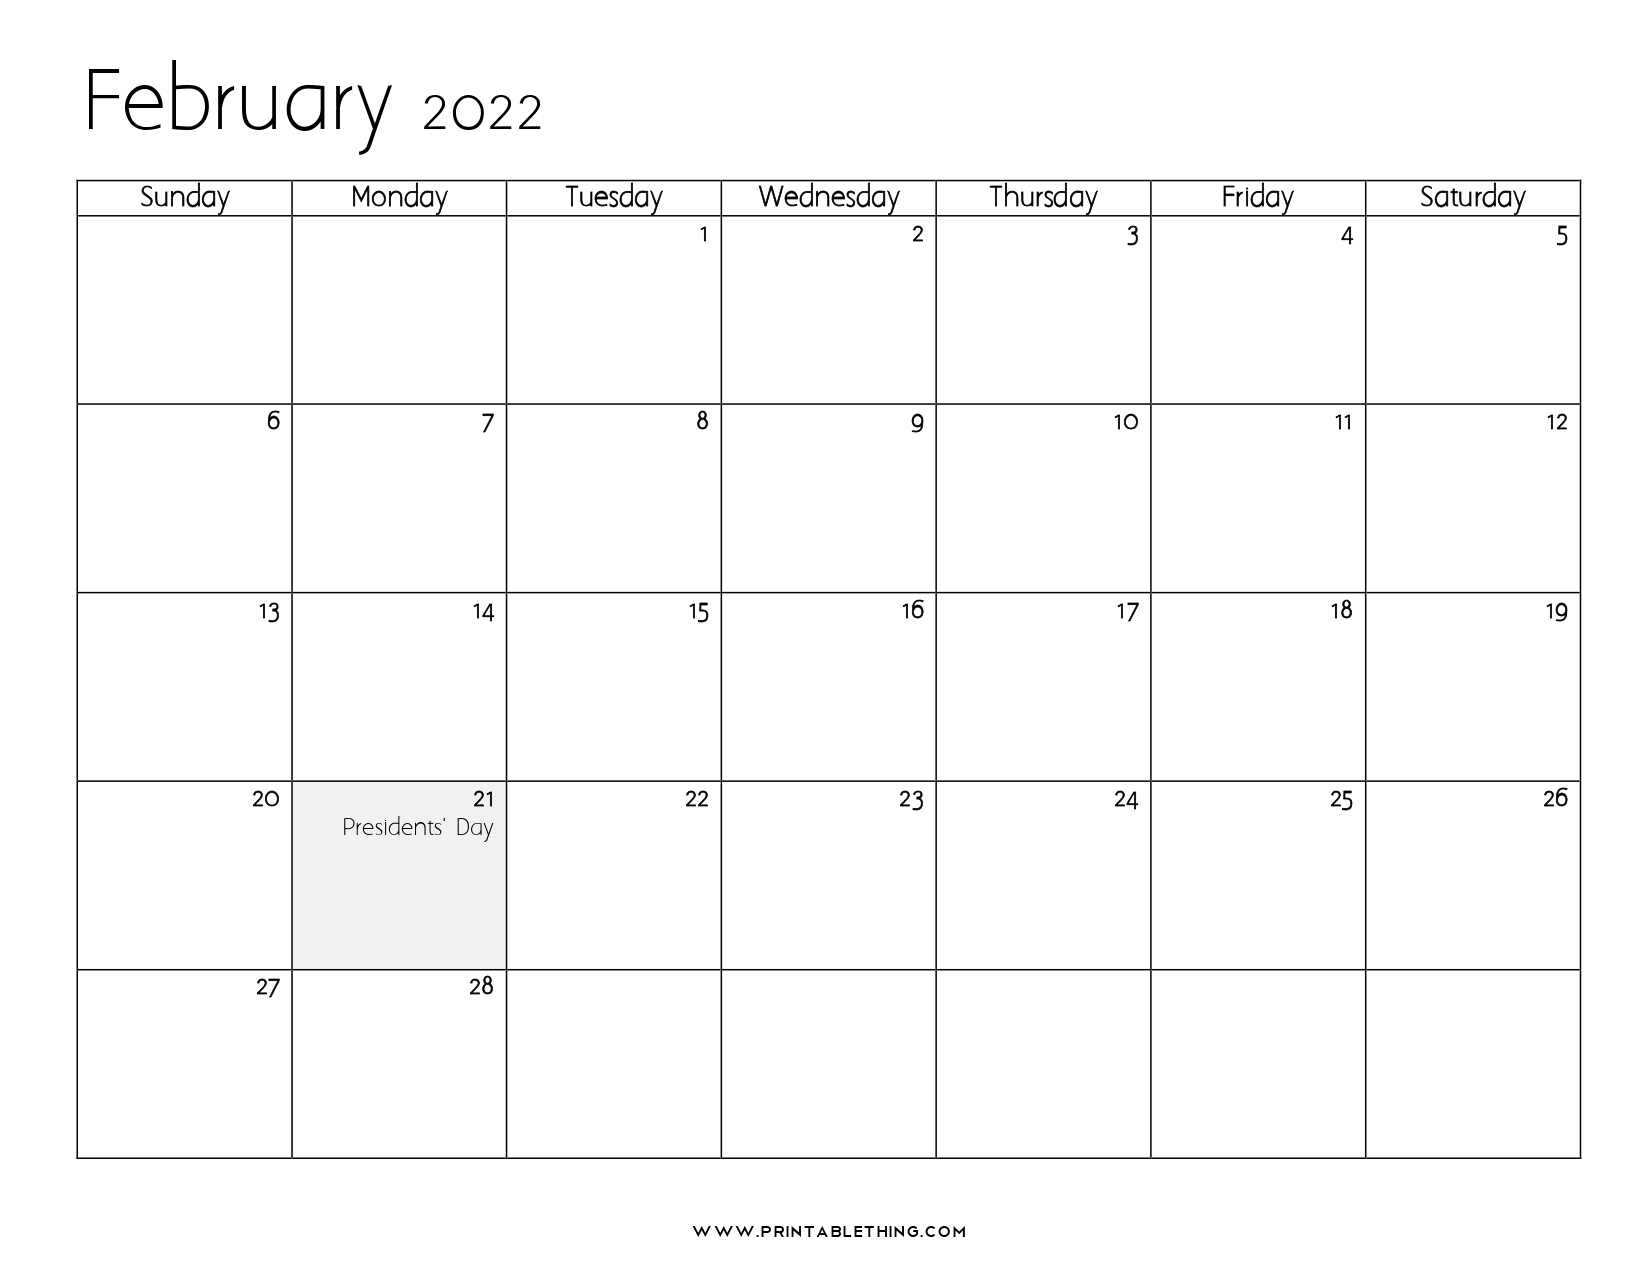 Remembering bill due dates is easy with a system for noting what needs to be paid and whether you've done with these free printable bill calendars. 20+ February 2022 Calendar | Printable, PDF, US Holidays ...